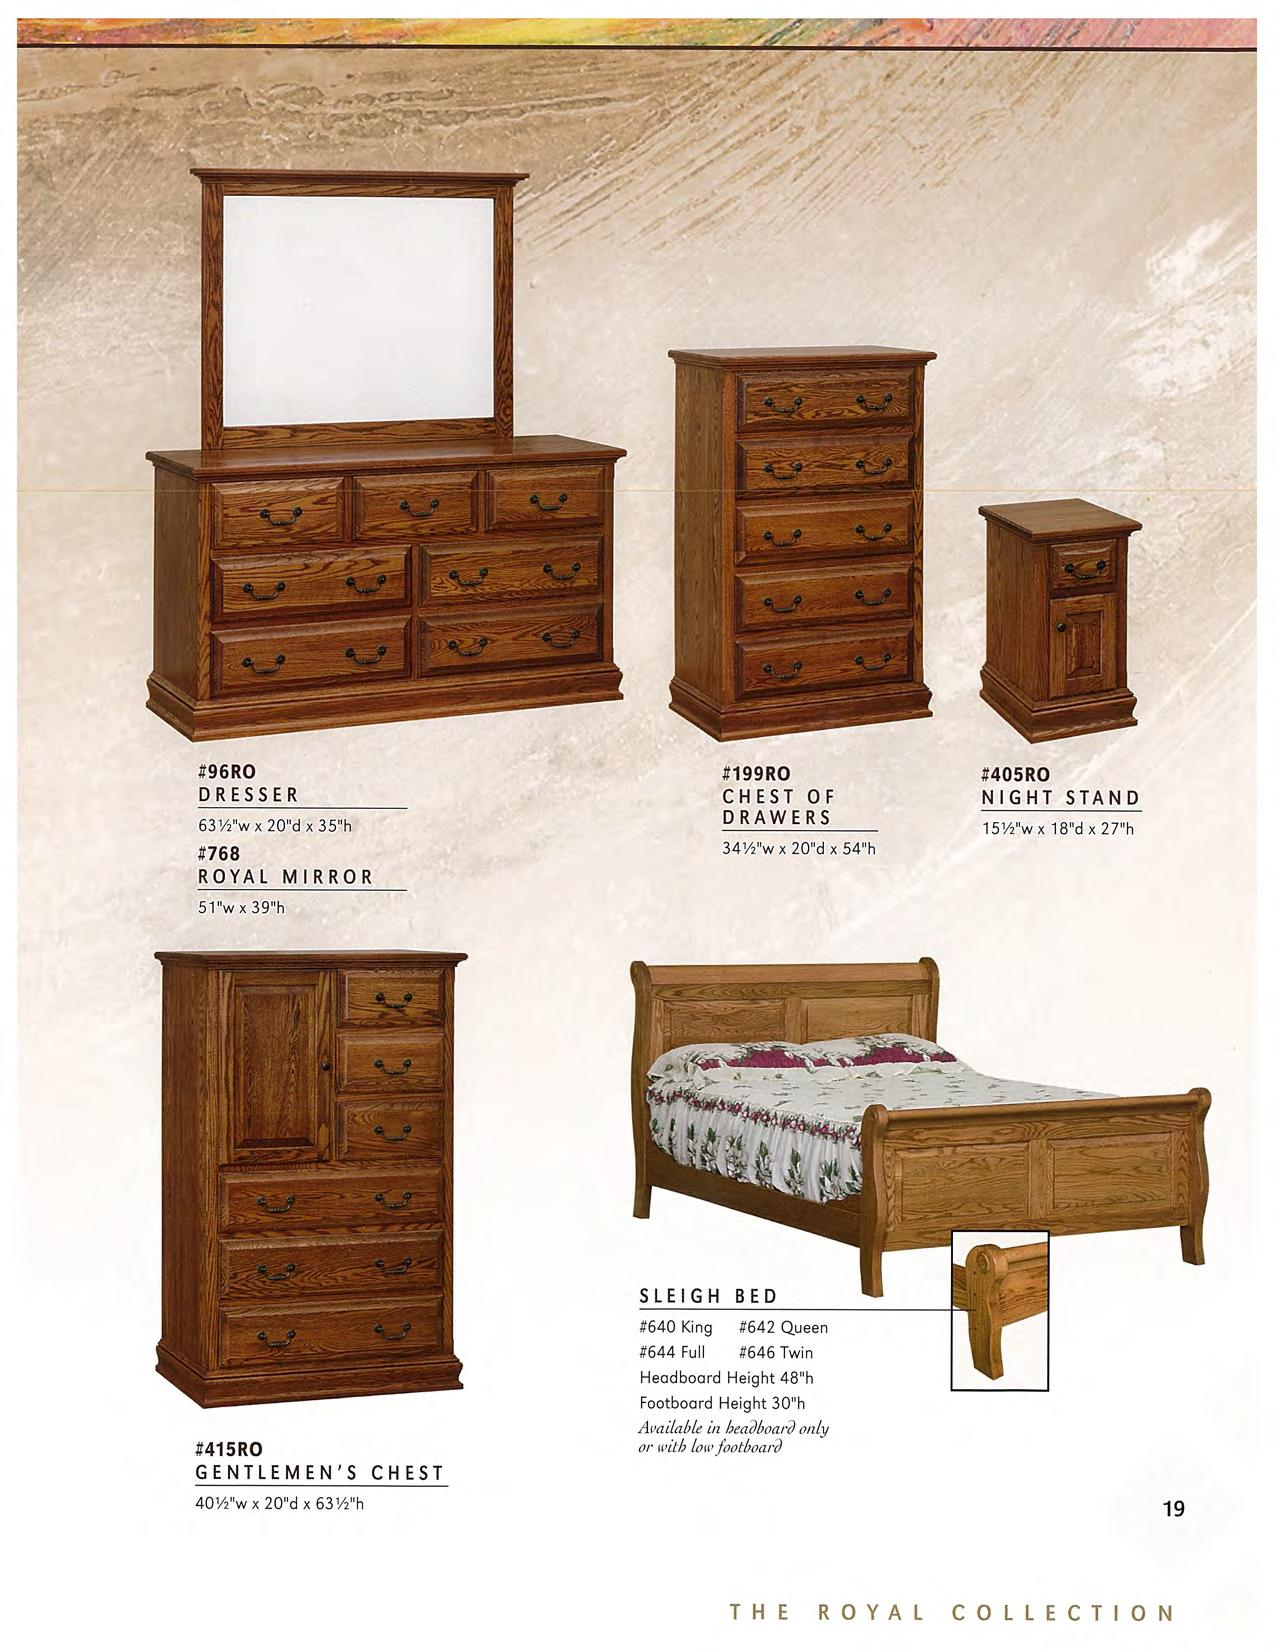 furniture-page-019